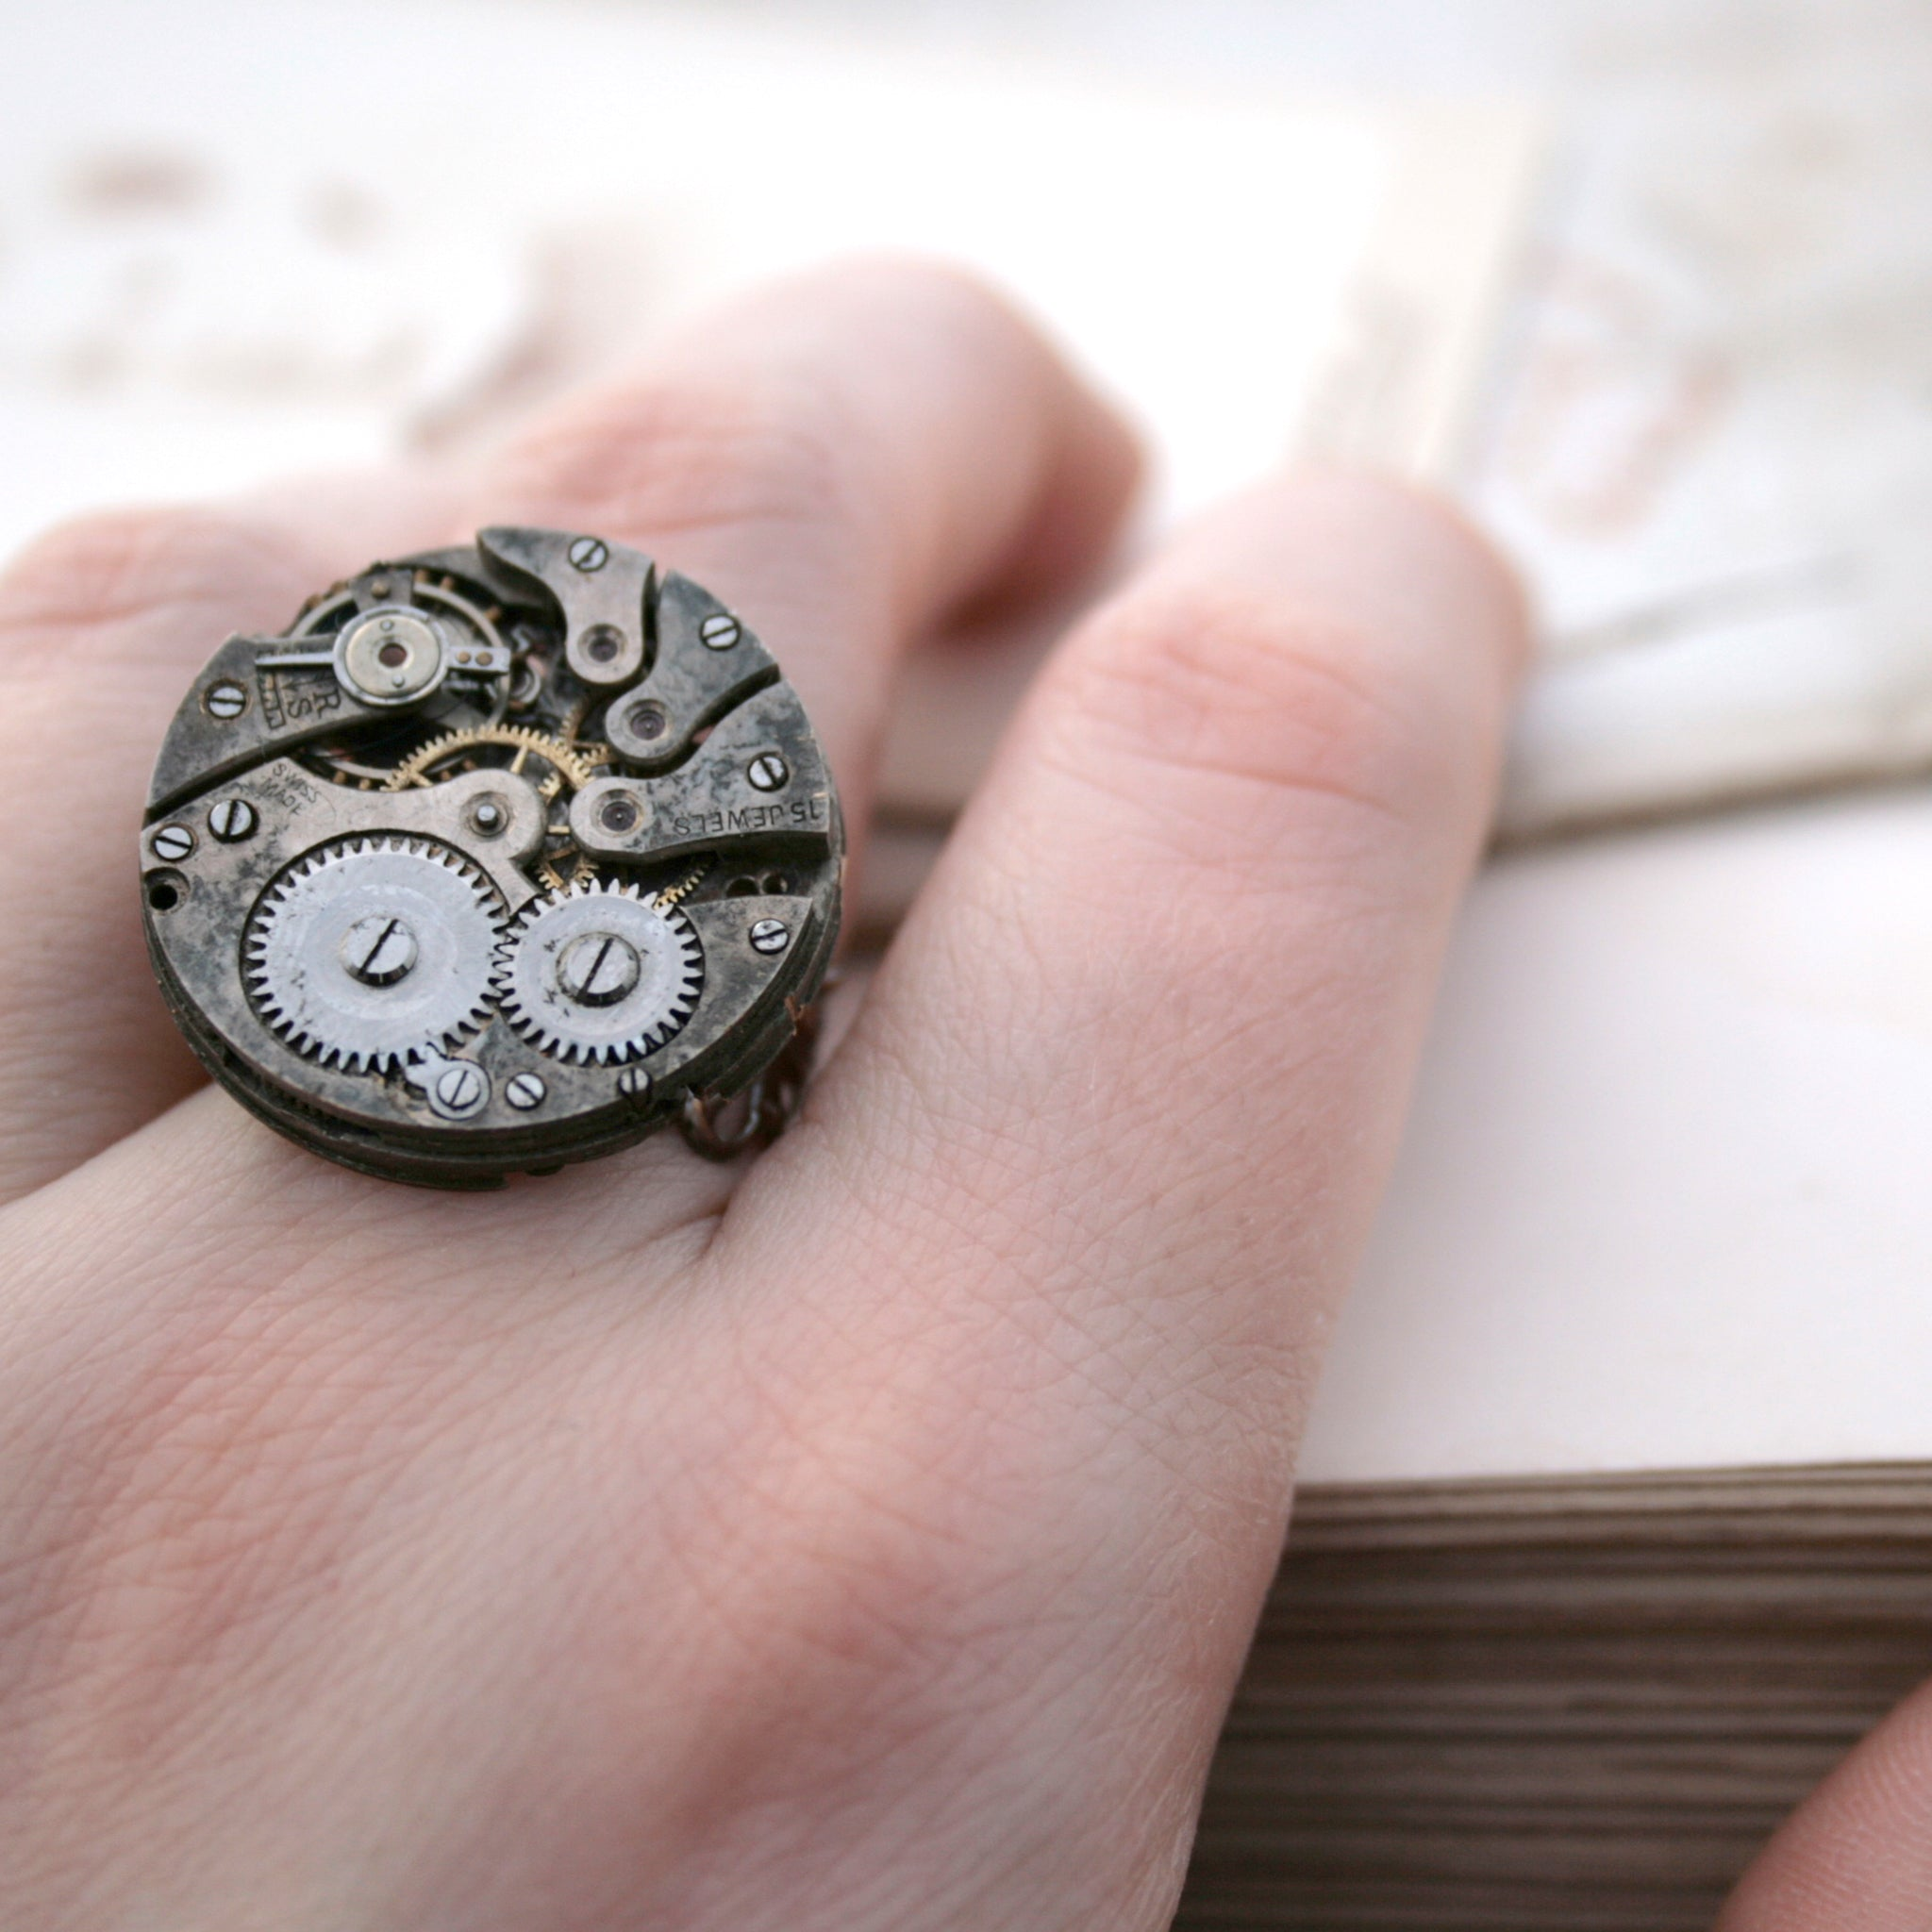 Gothic Ring with Watch Work on a hand